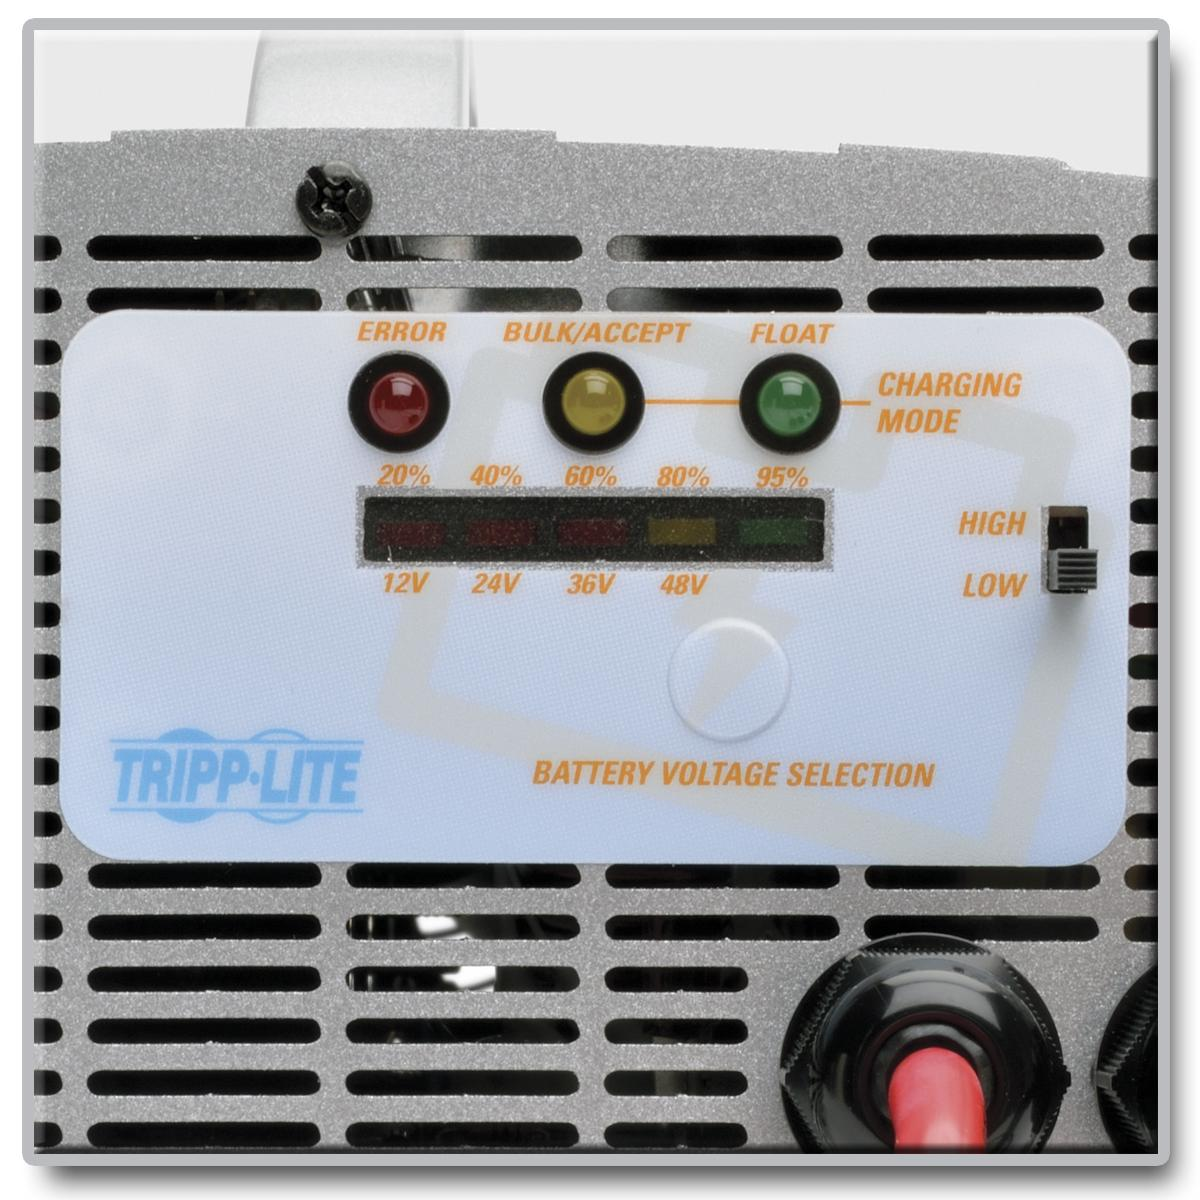 Tripp Lite Ubc41 4 In 1 Battery Charger 12v 24v 36v 48v Mains Voltage Indicator With A Led Indicators Premium Safety Features And Portable Design